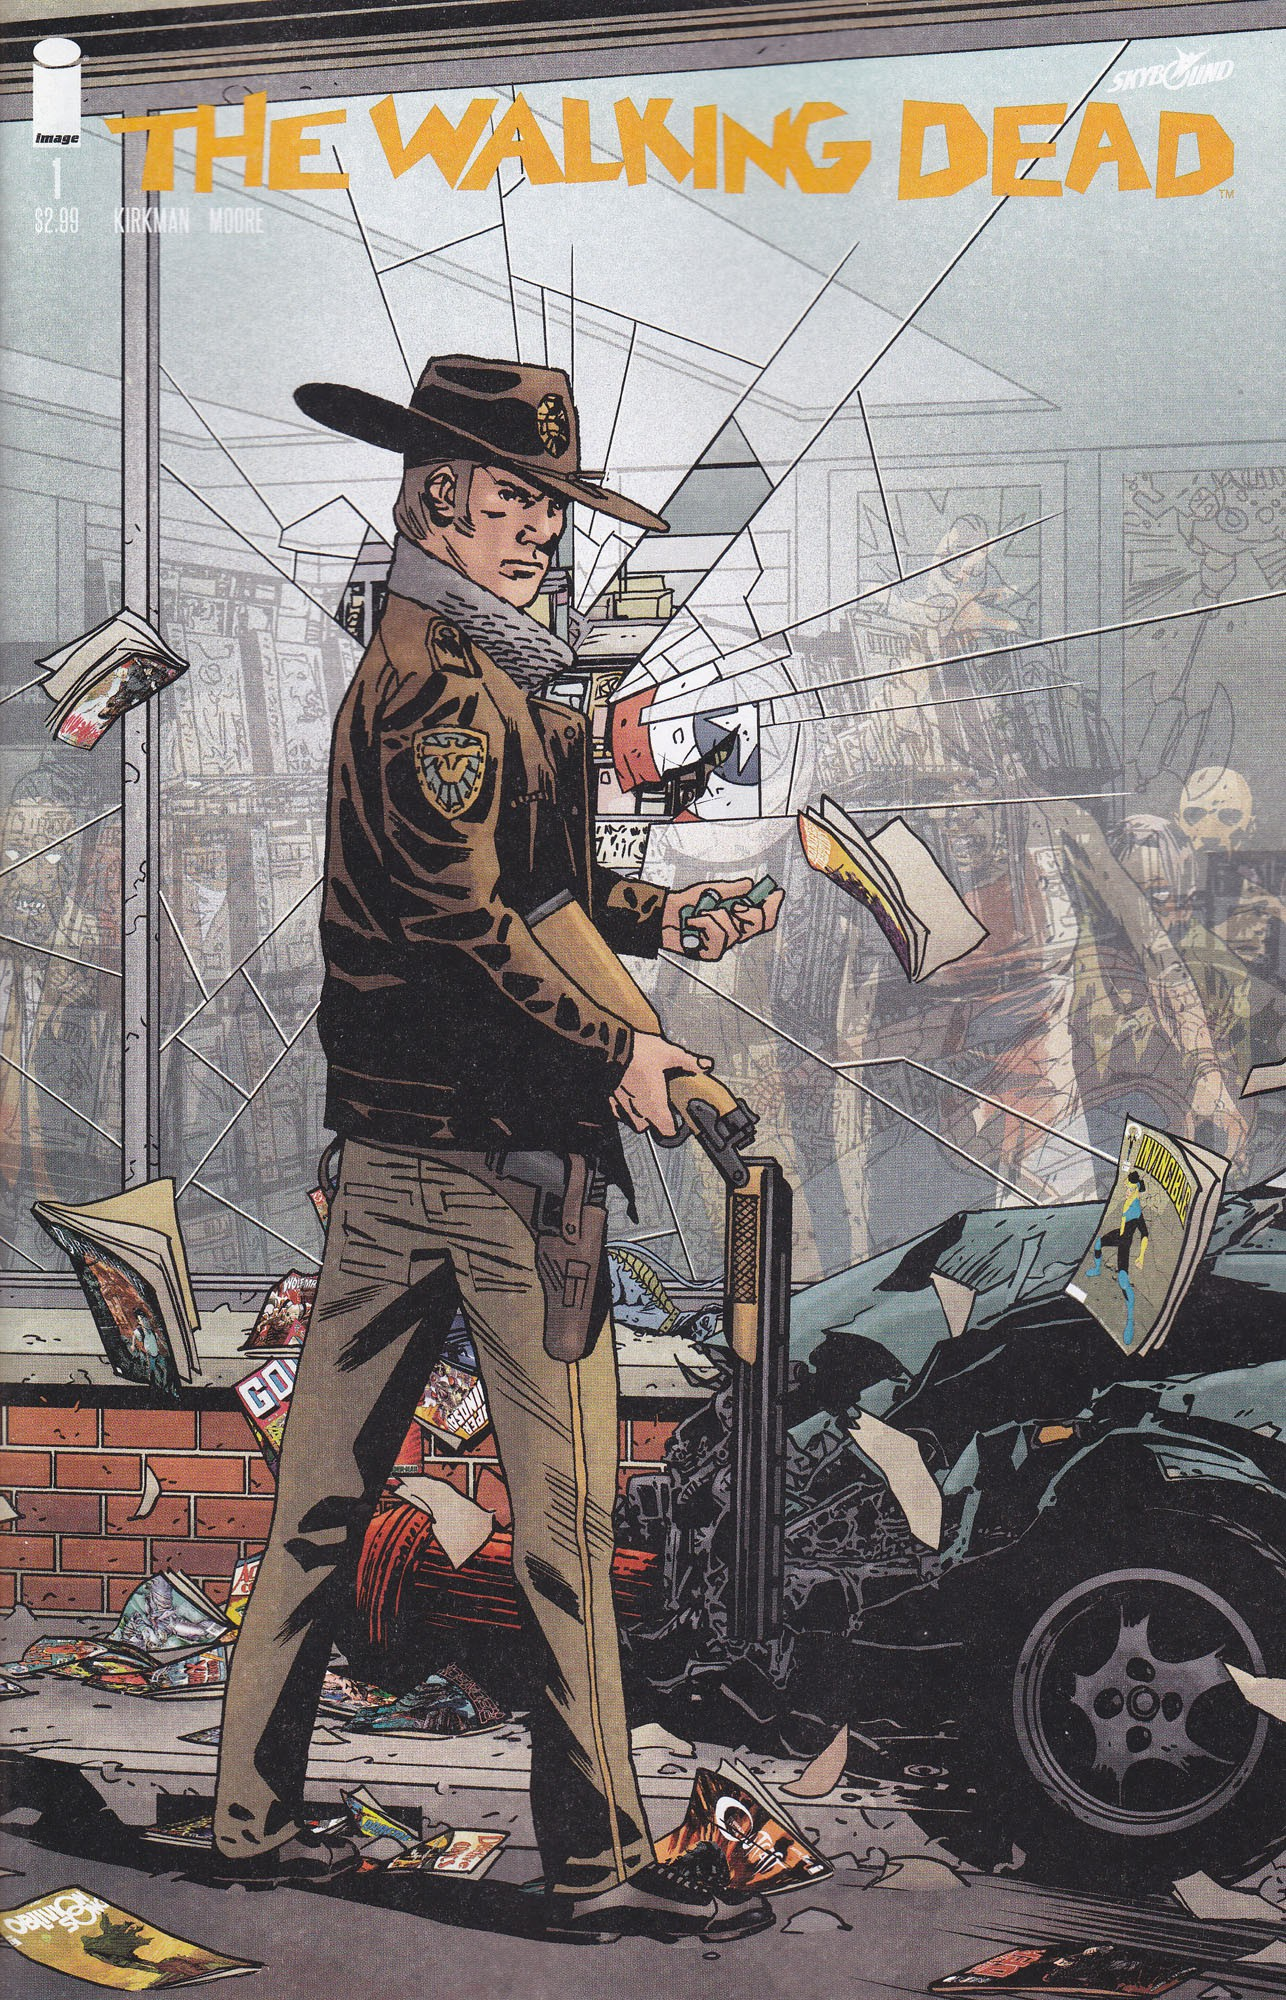 Joanne Harvelle, from The Walking Dead: When the End Comes